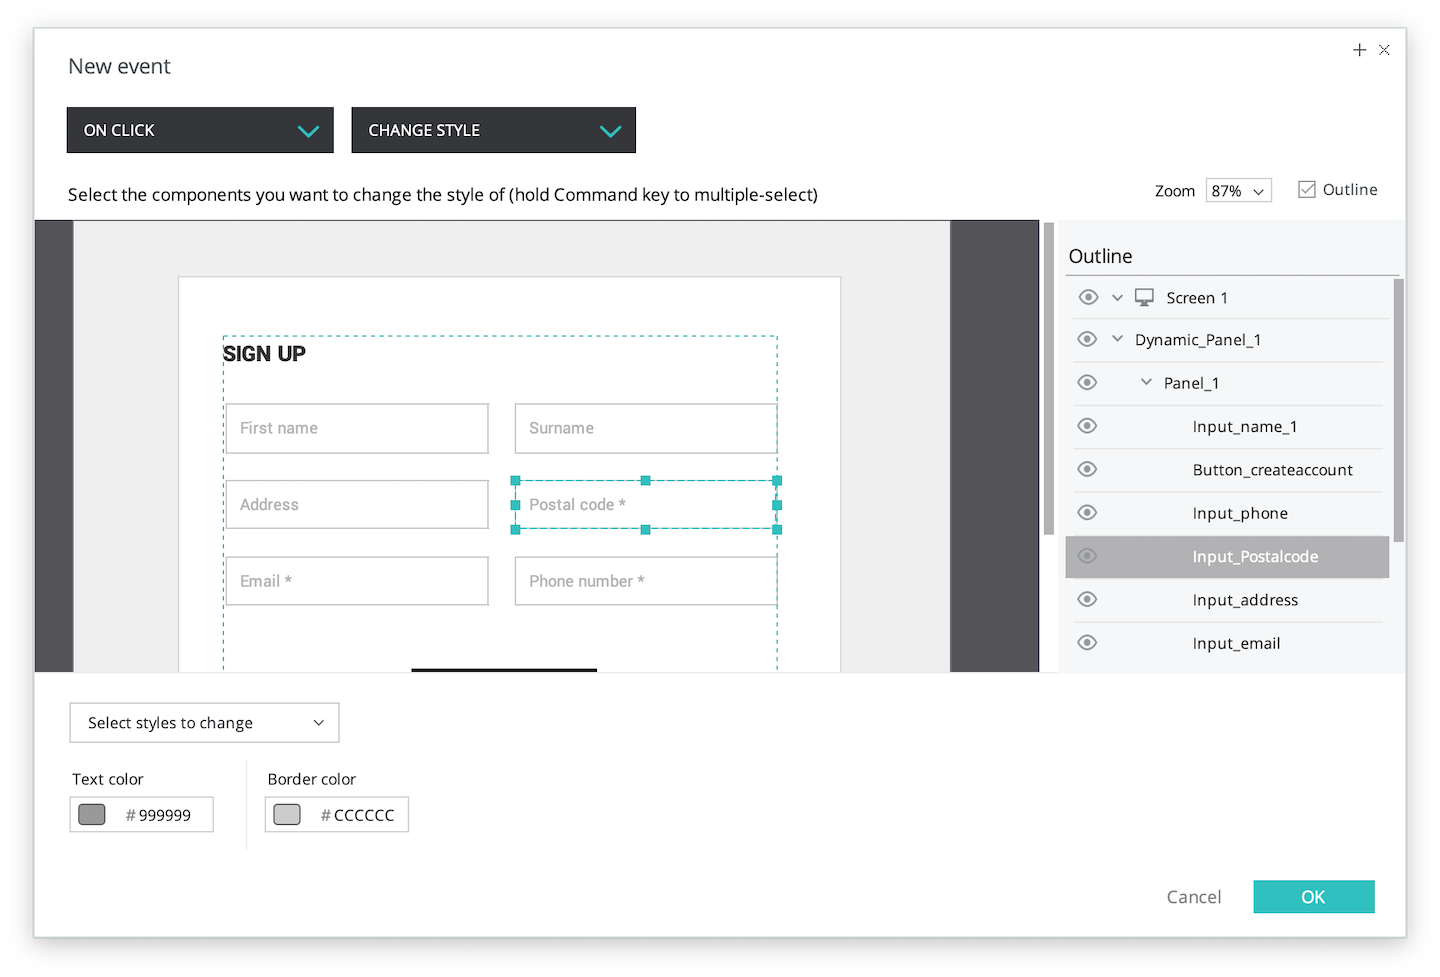 Change style for input field